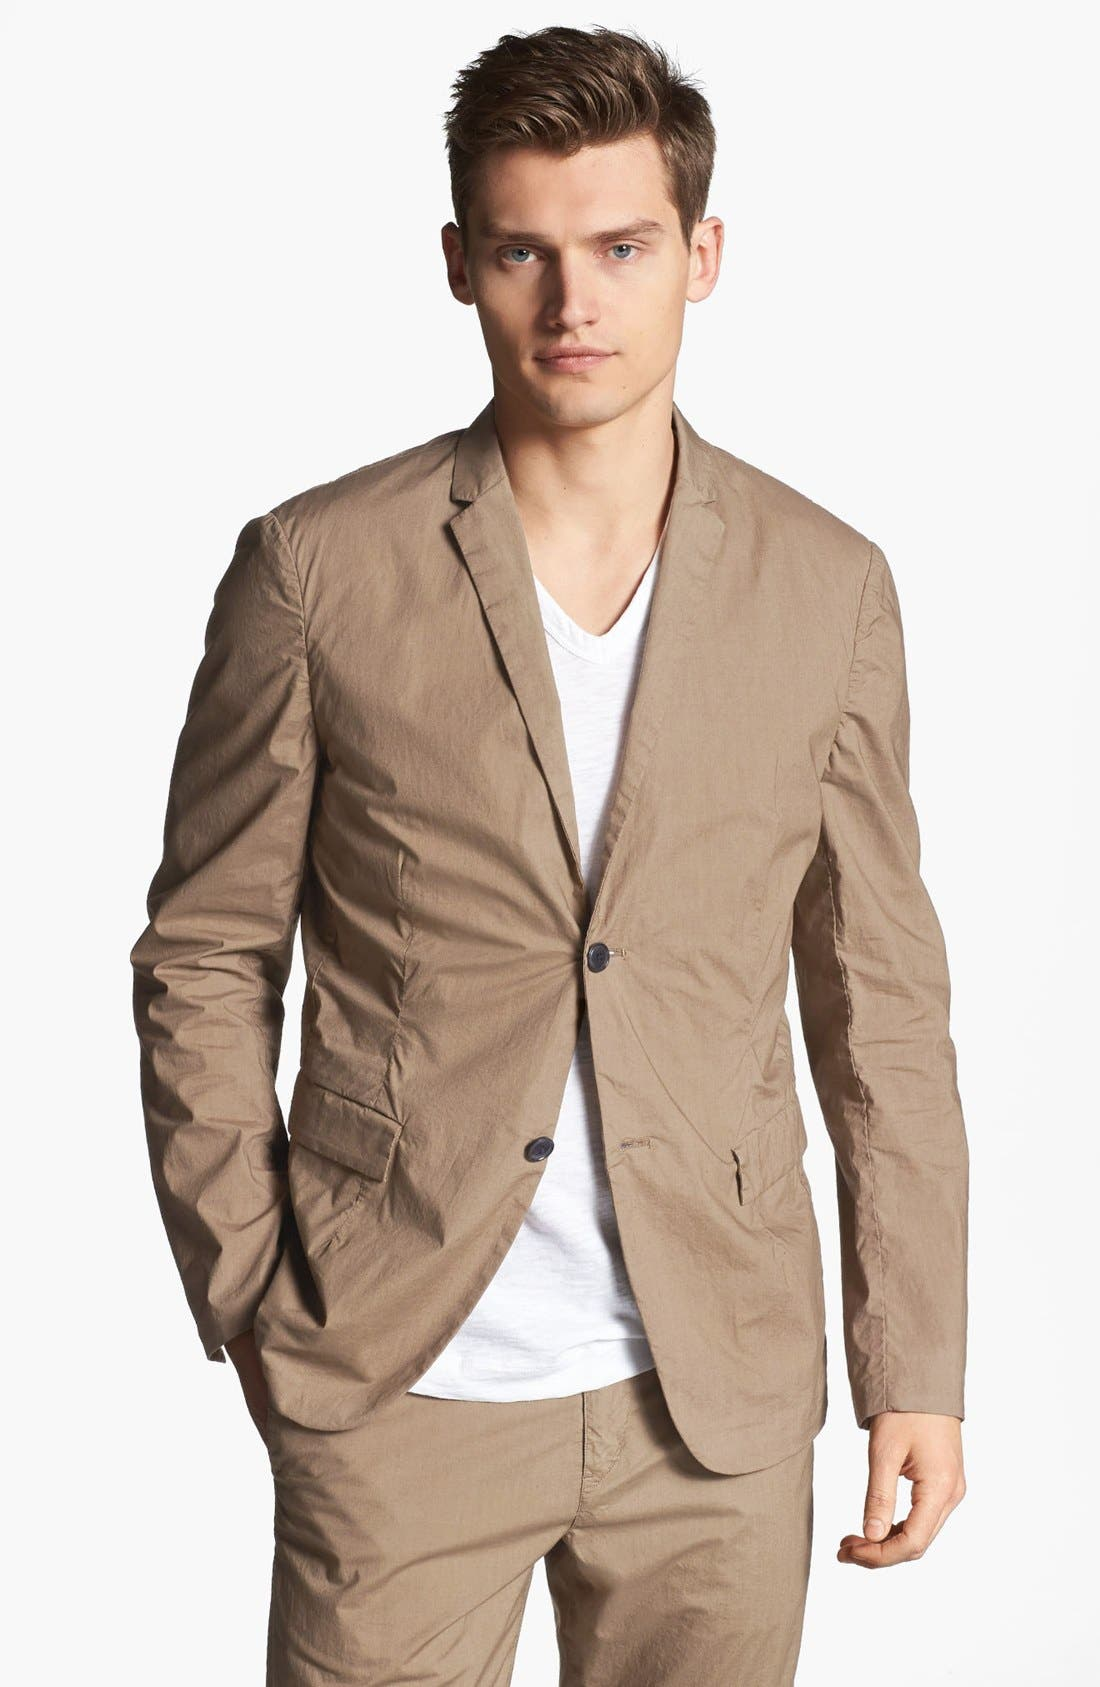 Alternate Image 1 Selected - Theory Cotton Blend Sportcoat